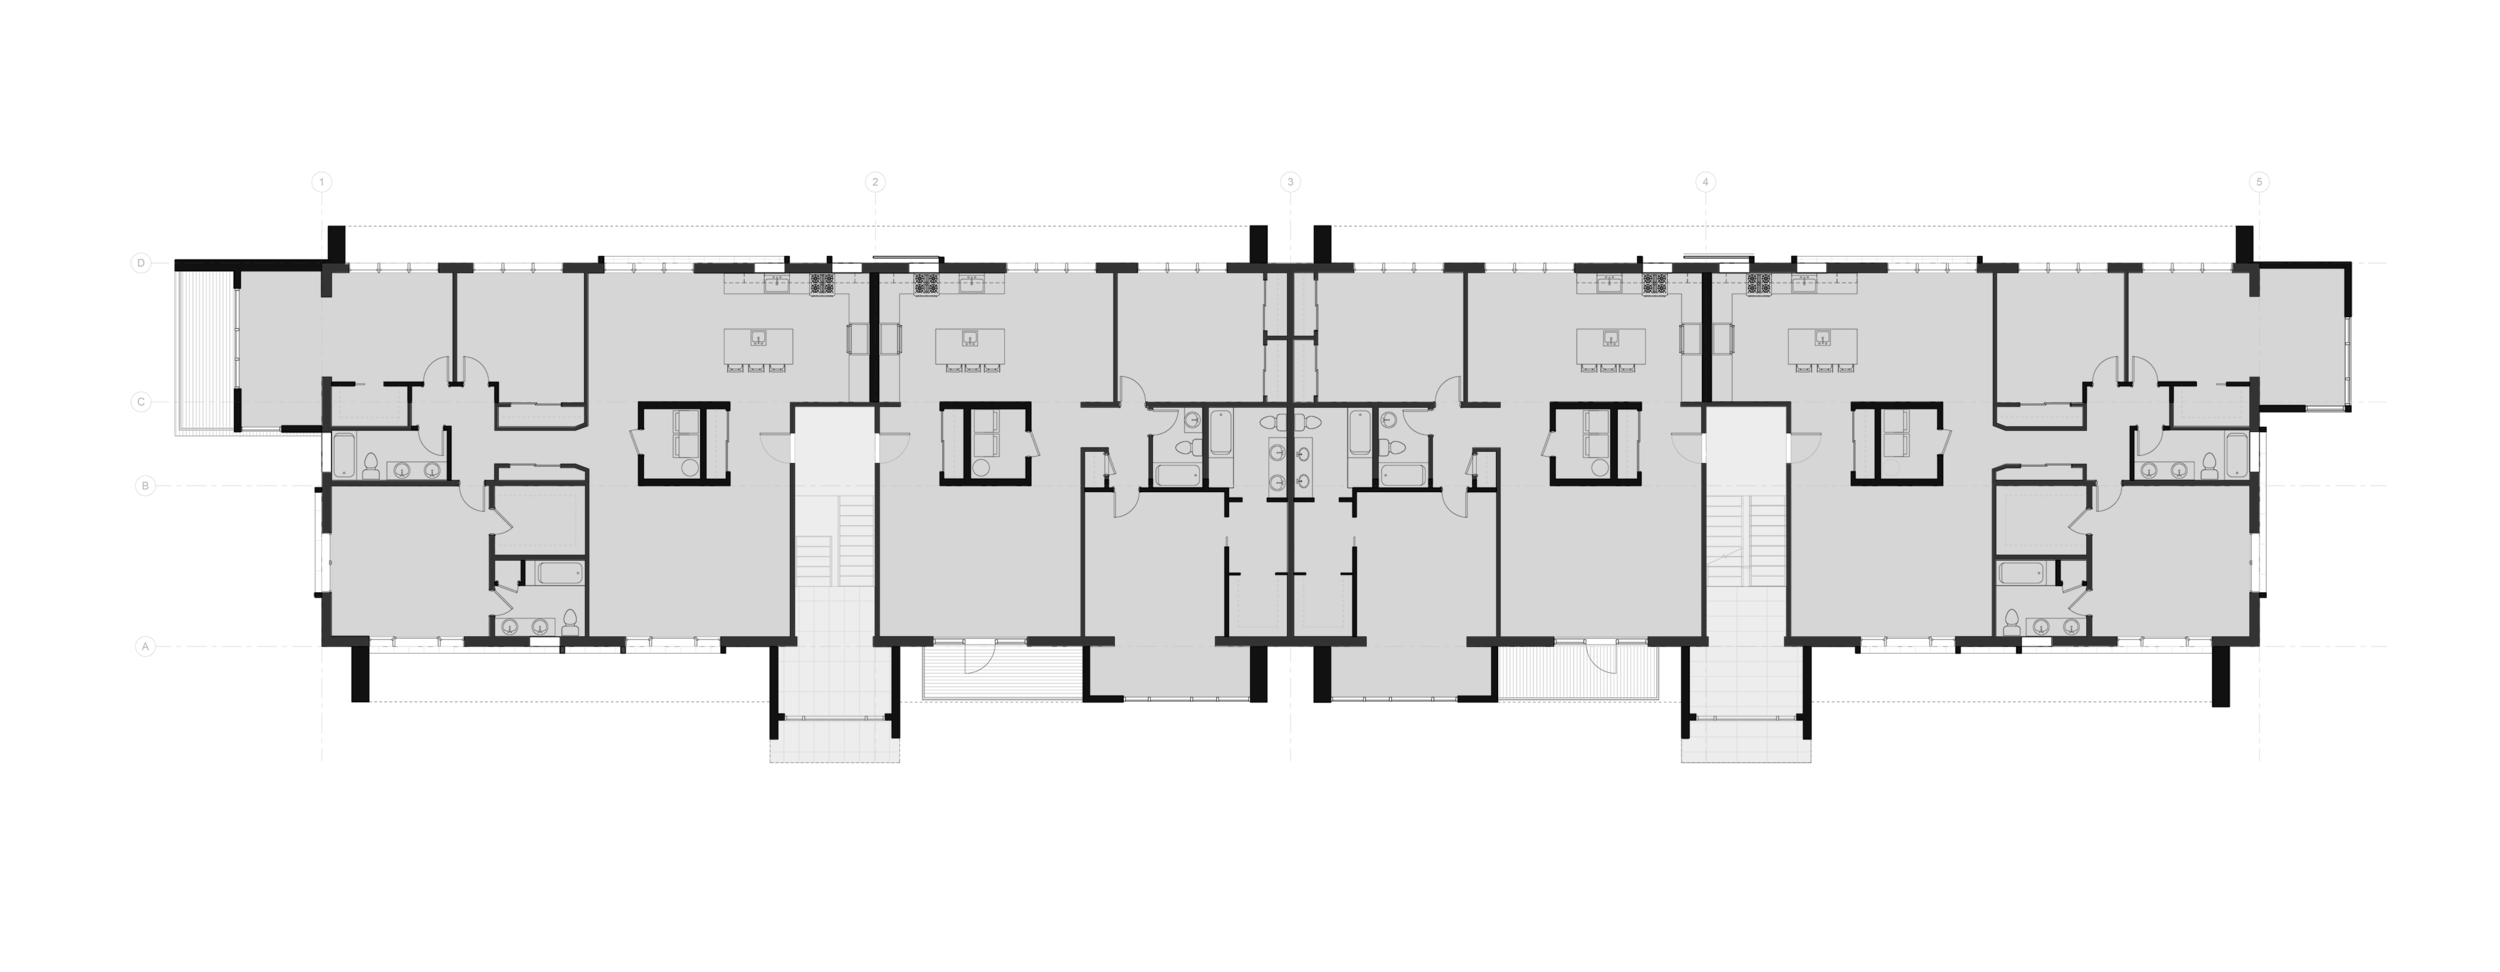 3505 Floor Plan New.png